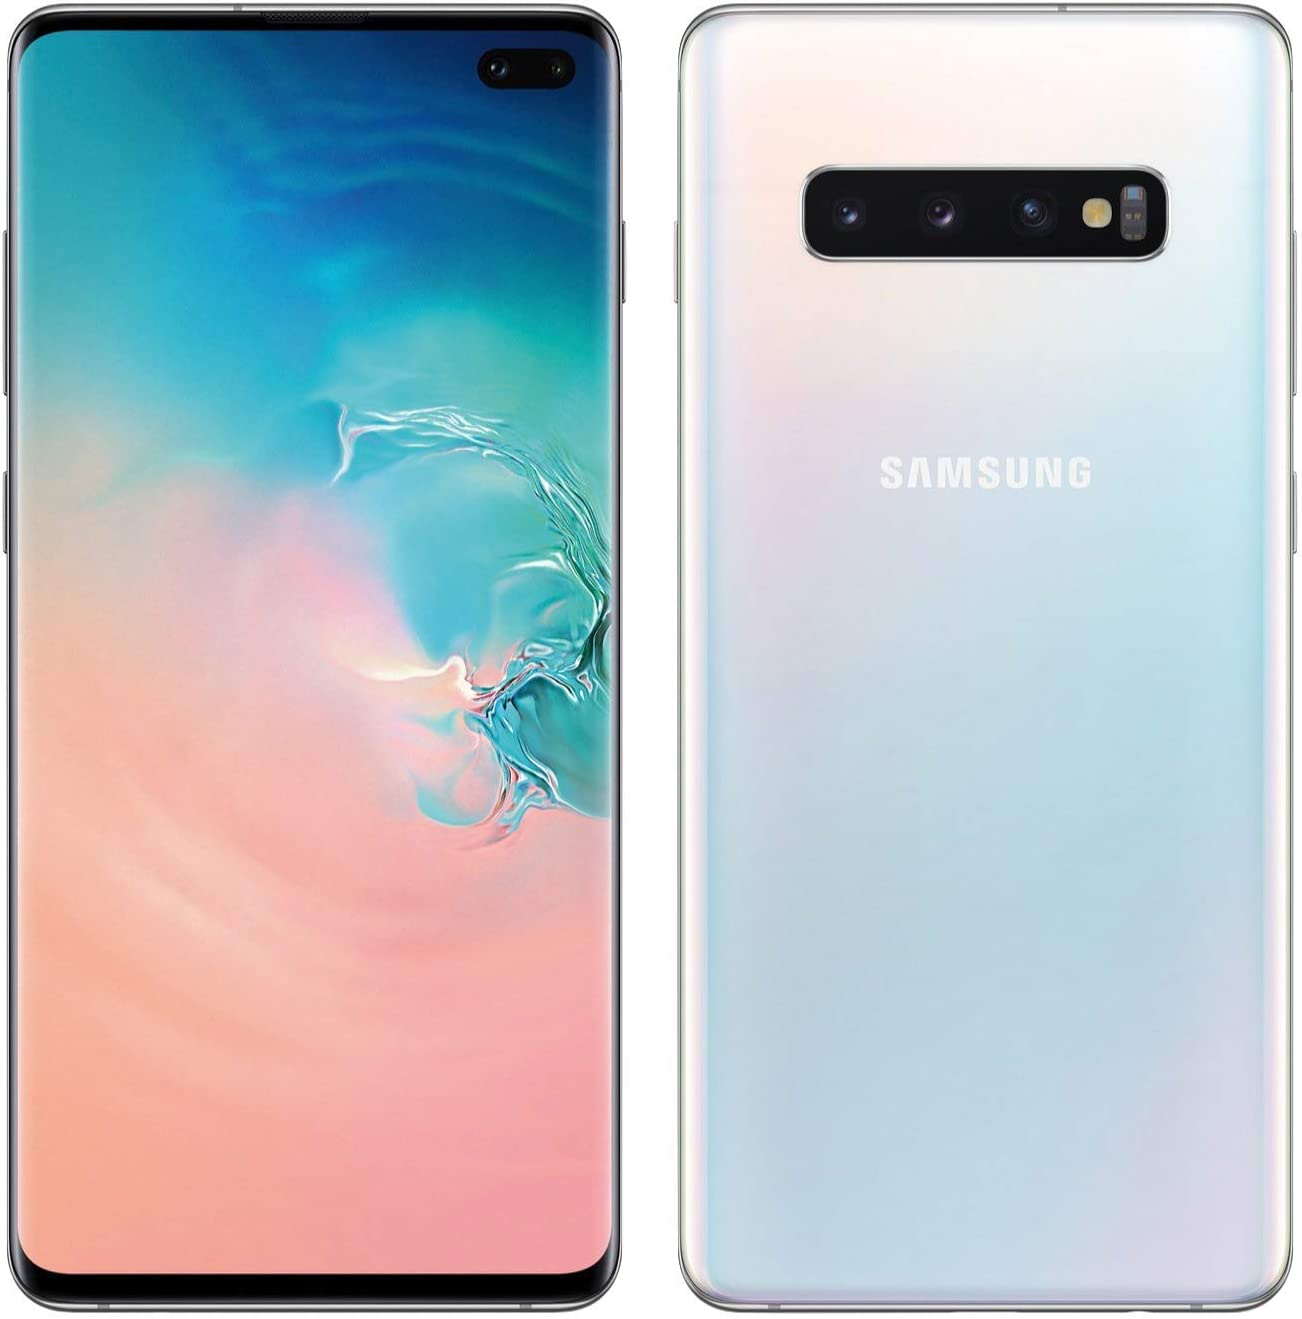 Image result for Samsung Galaxy S10 Plus IMAGES